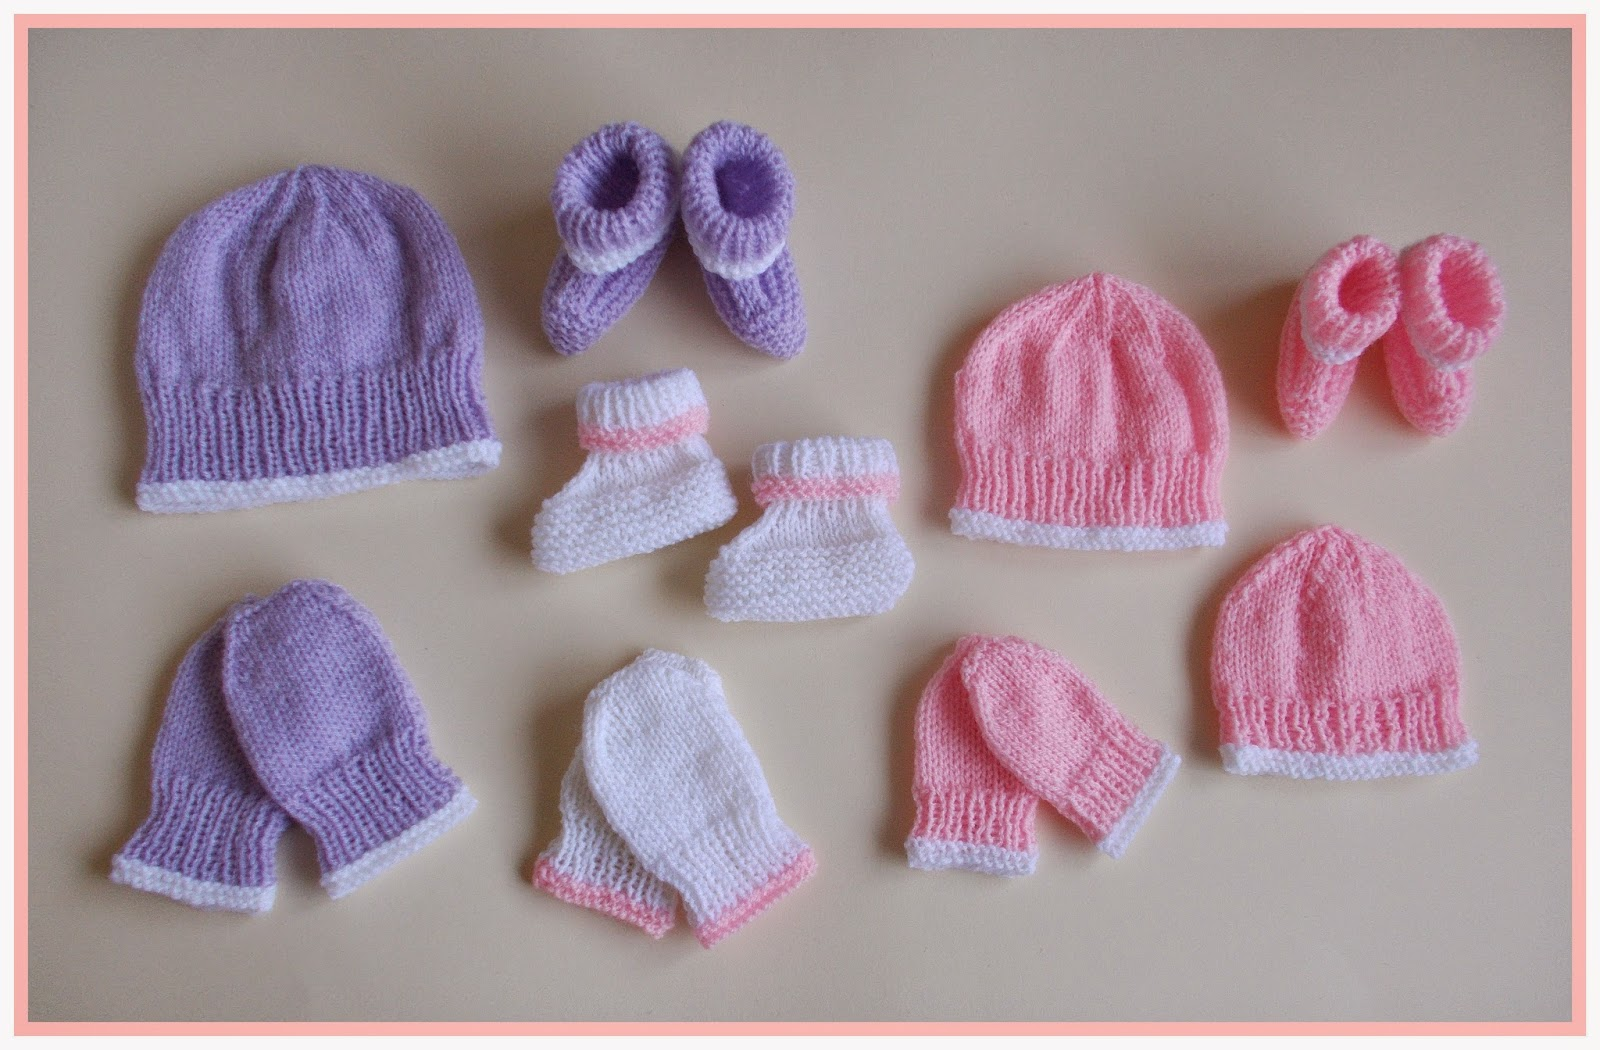 Knitting Patterns For Baby Mittens And Booties : mariannas lazy daisy days: Premature & Newborn Baby Hat, Mittens &am...